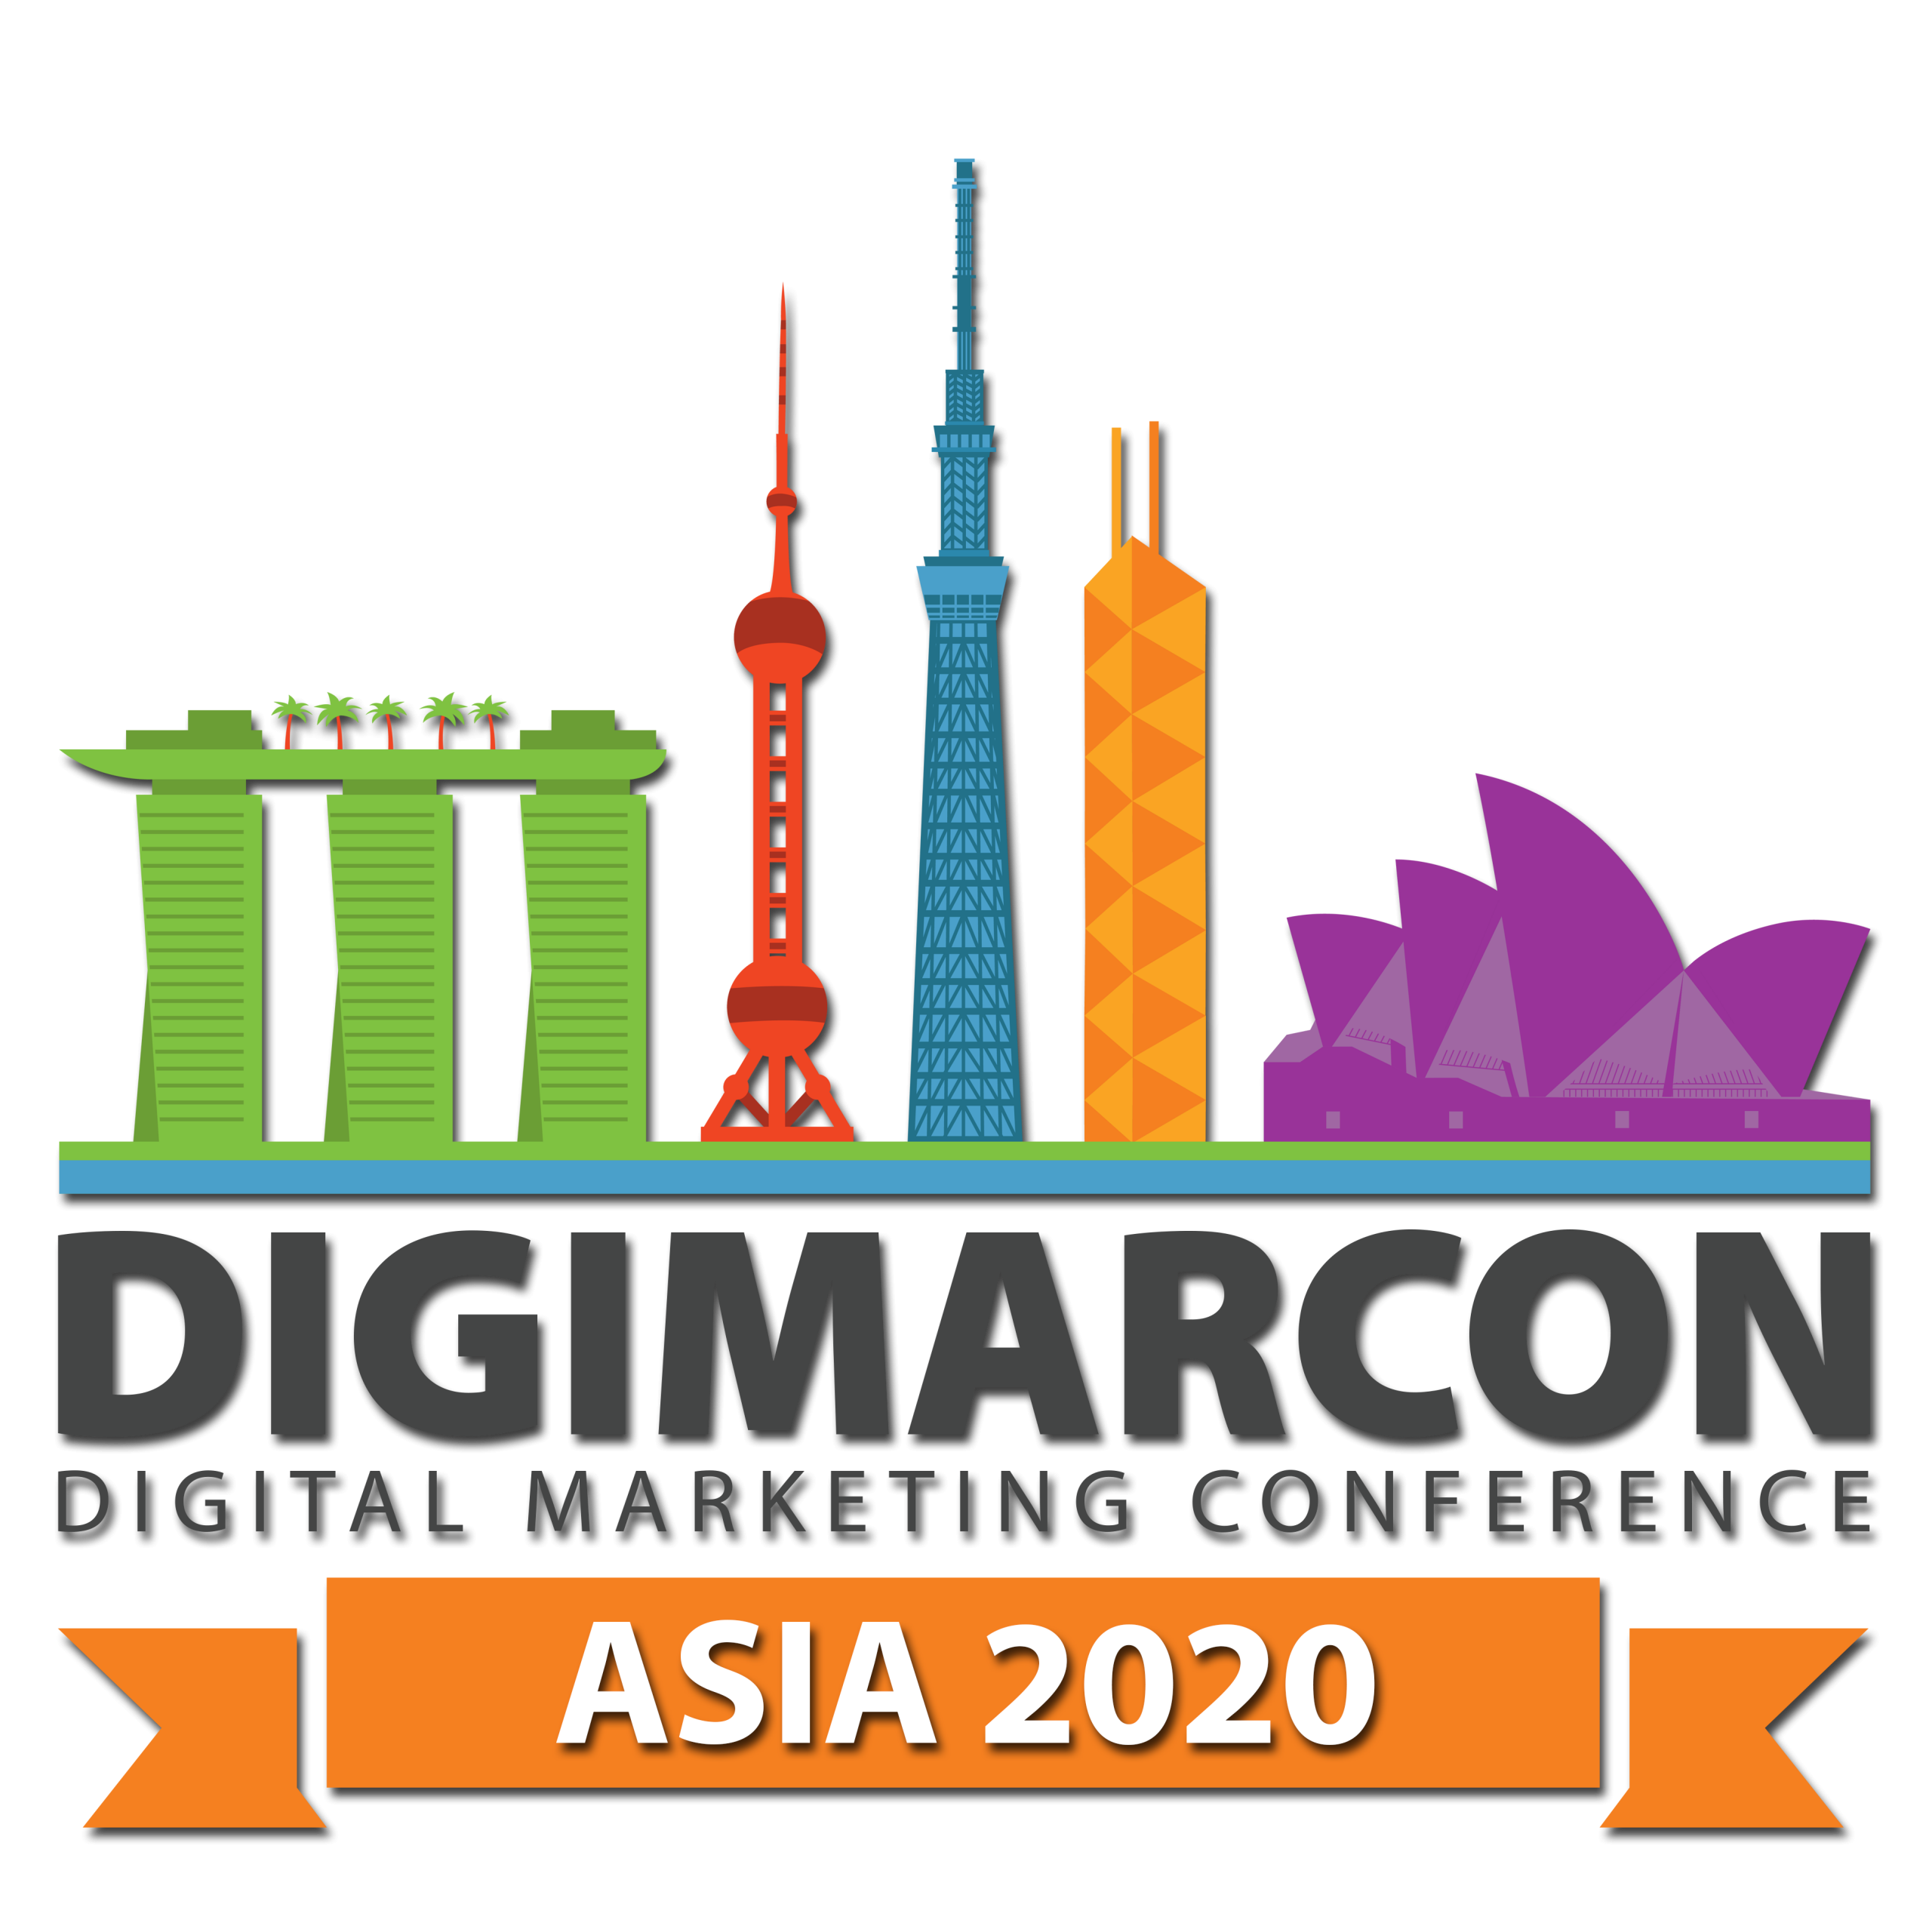 DIGIMARCON ASIA 2021 – Digital Marketing Conference & Exhibition